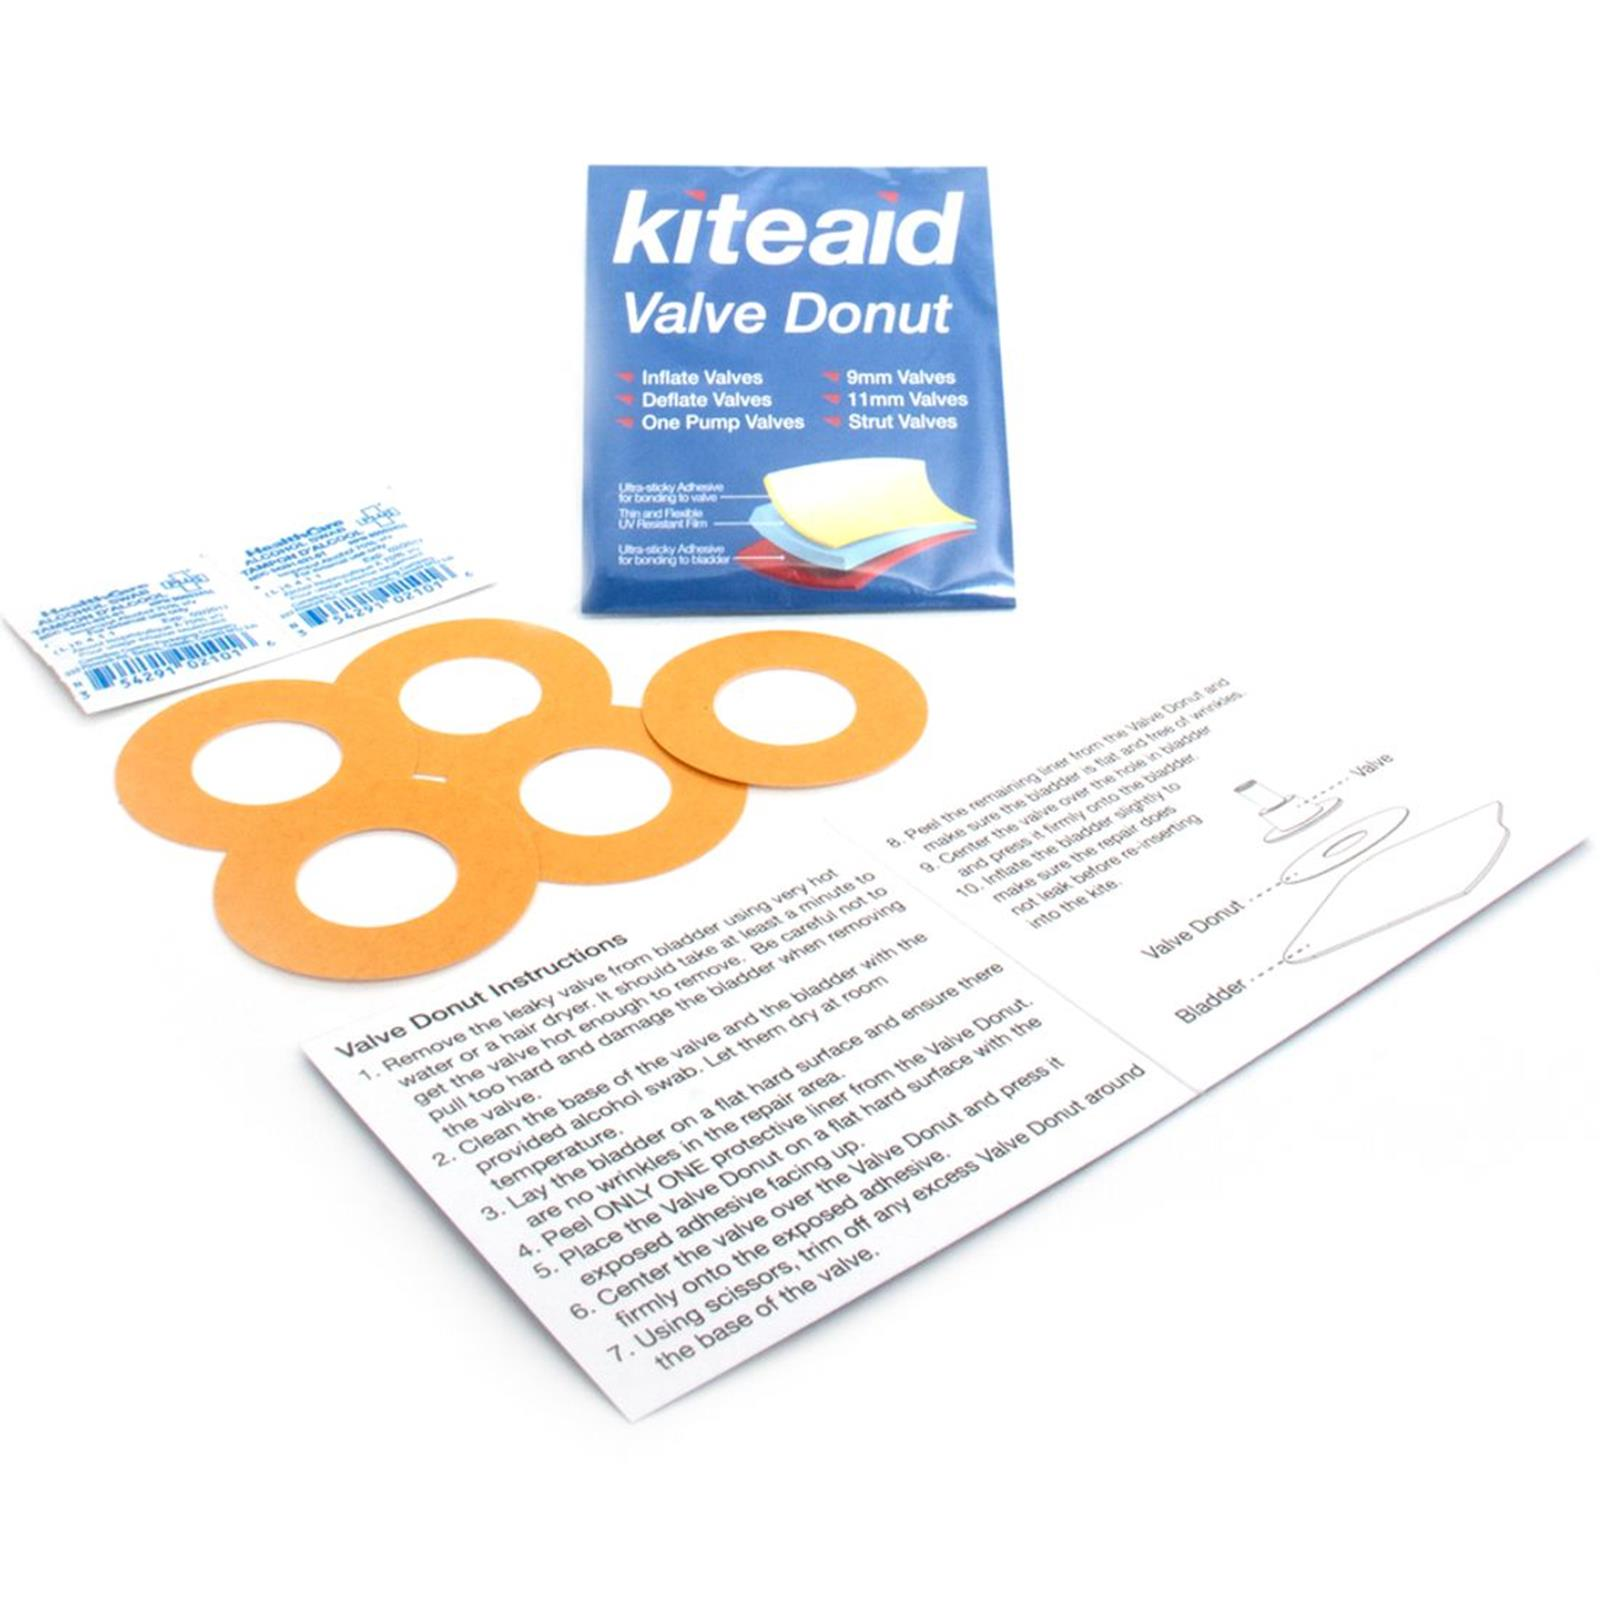 KiteAid Reparatur Kite Ventil Donut Repair Kit